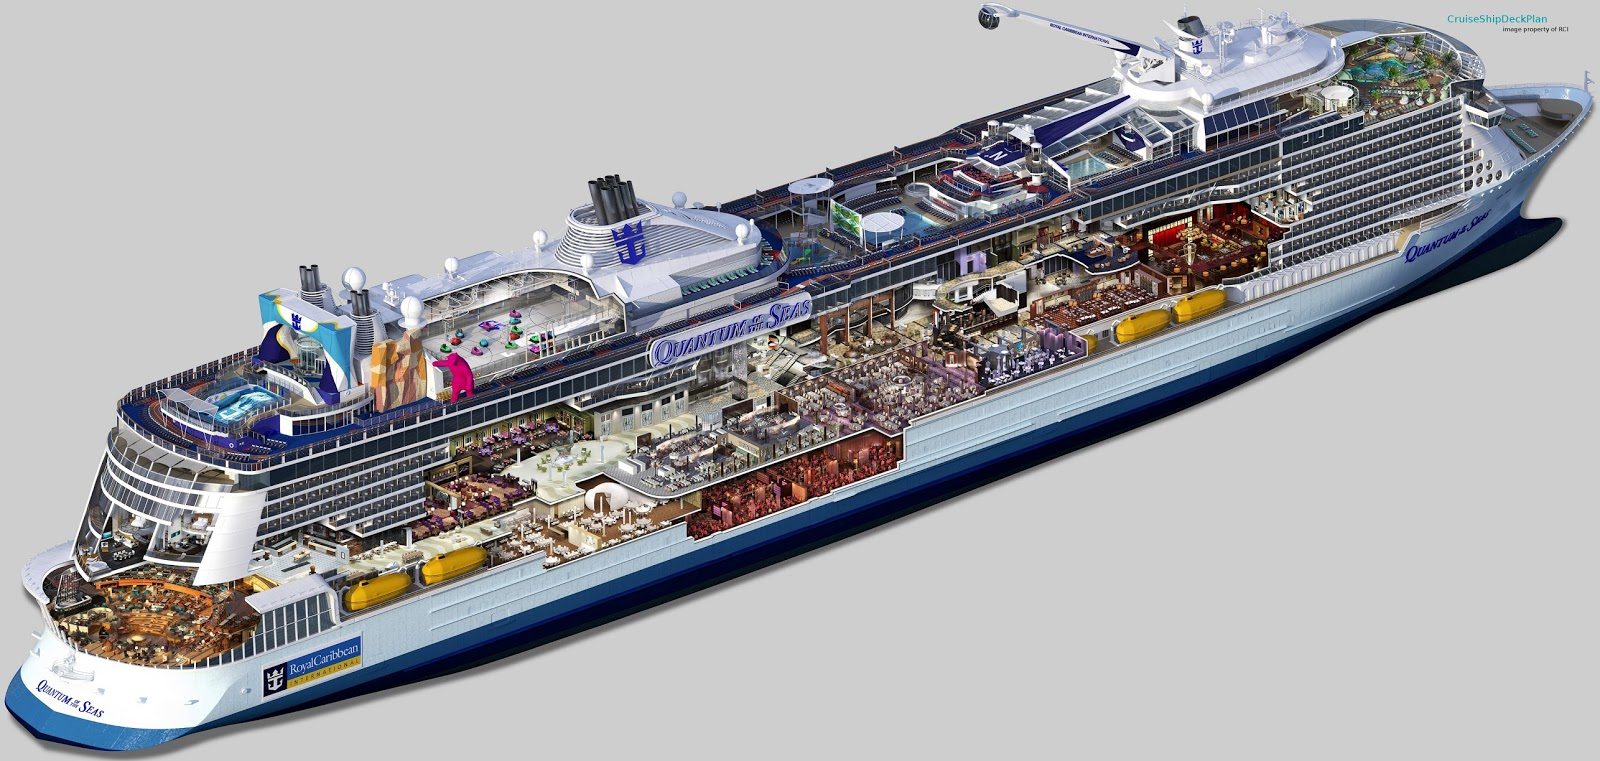 Anthem of the seas current position dual tracking ship anthem of the seas pooptronica